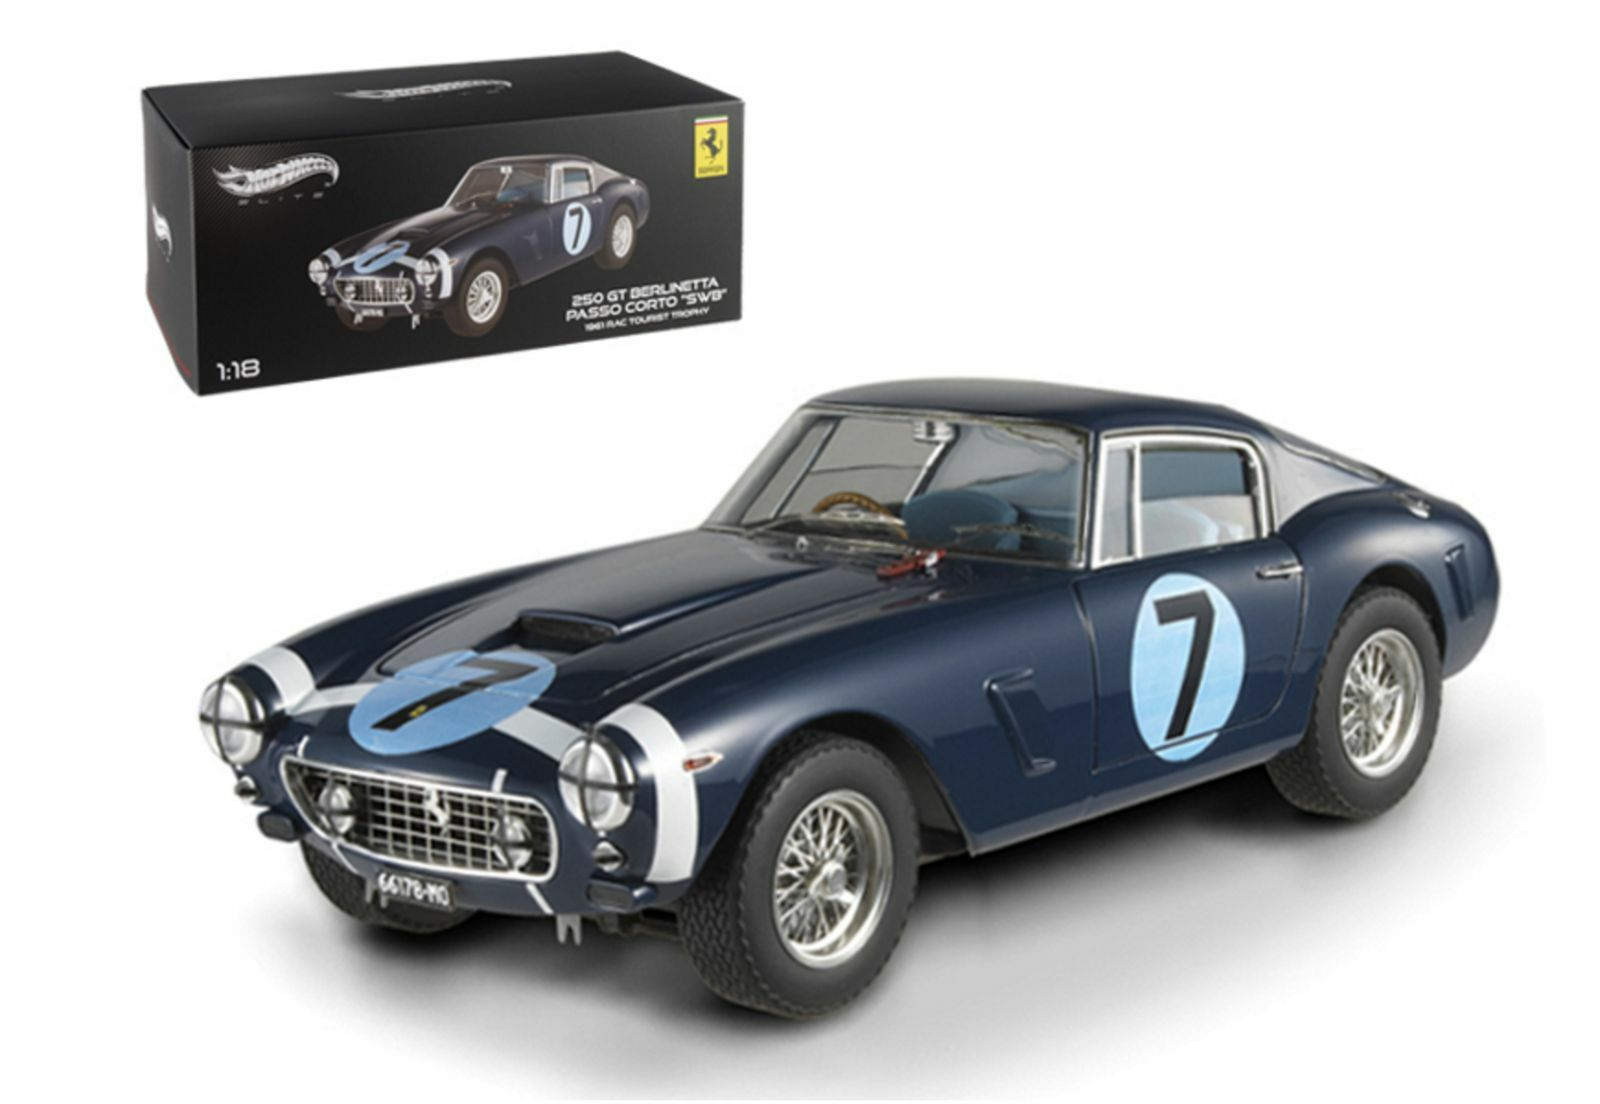 1 18 Hot Wheels Elite Ferrari 250 GT Berlinetta Passo Corto  SWB  1961 Goodwood